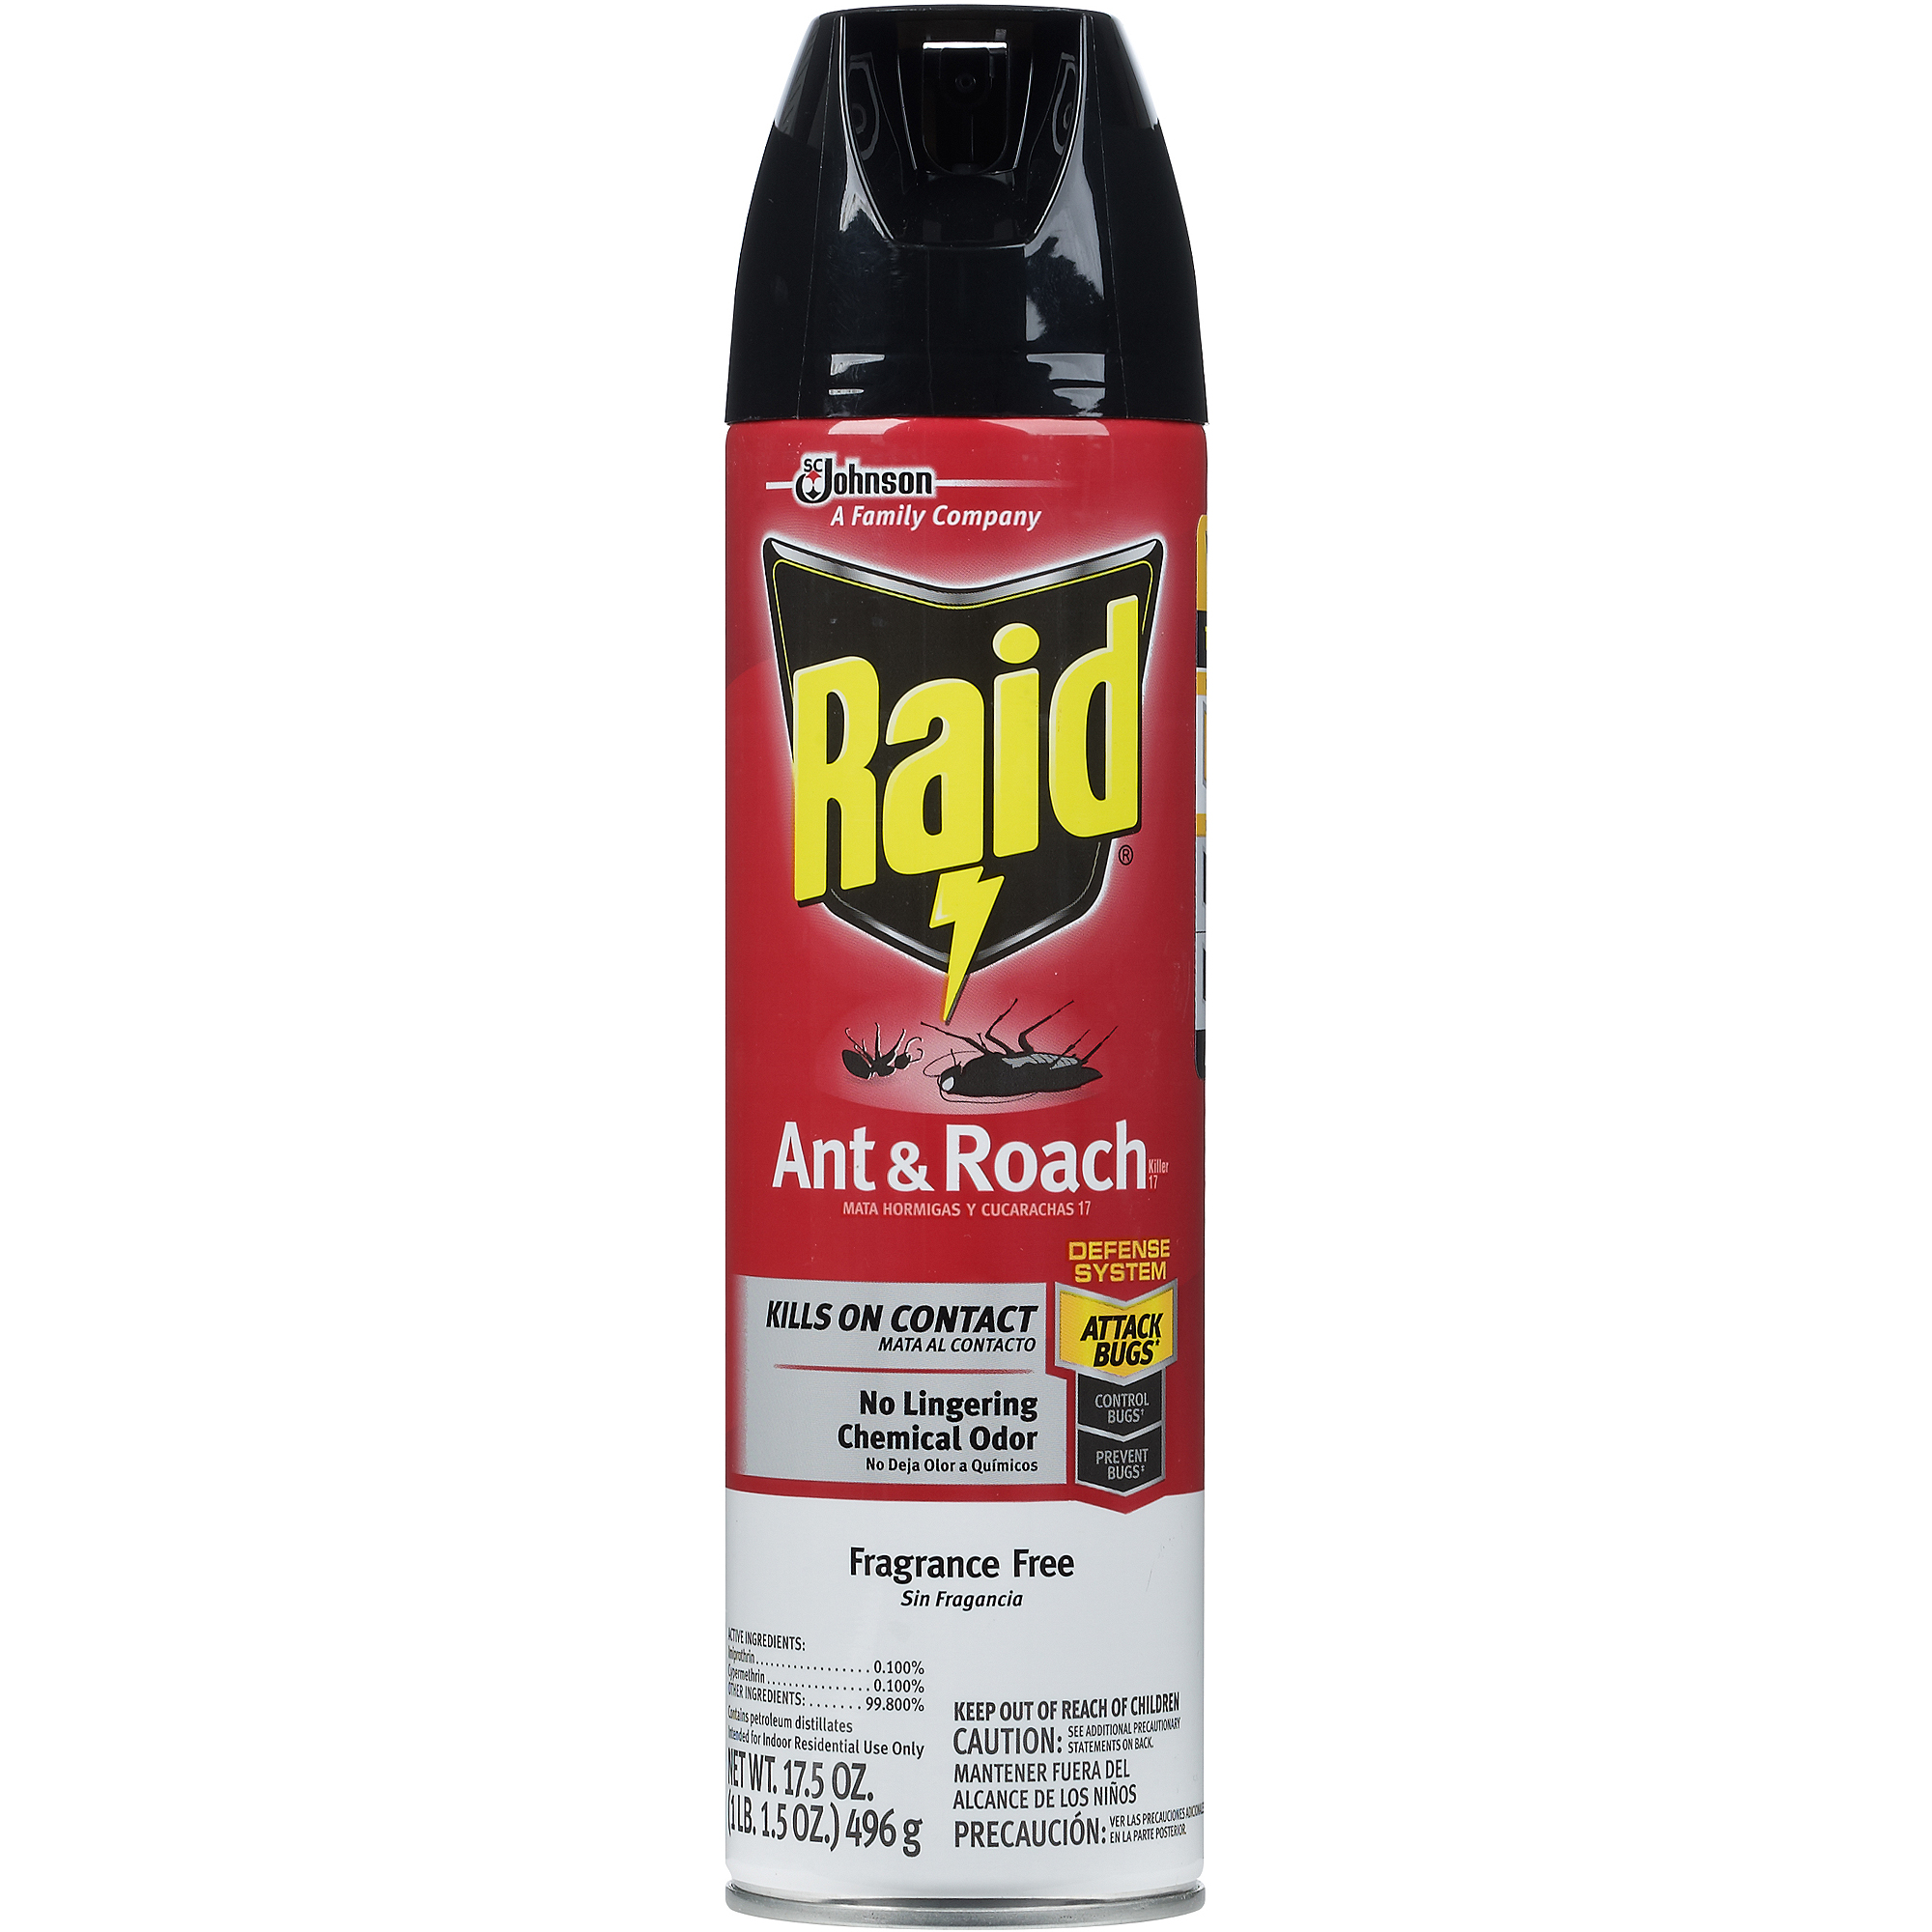 Raid Ant & Roach Killer, Fragrance Free, 17.5 OZ